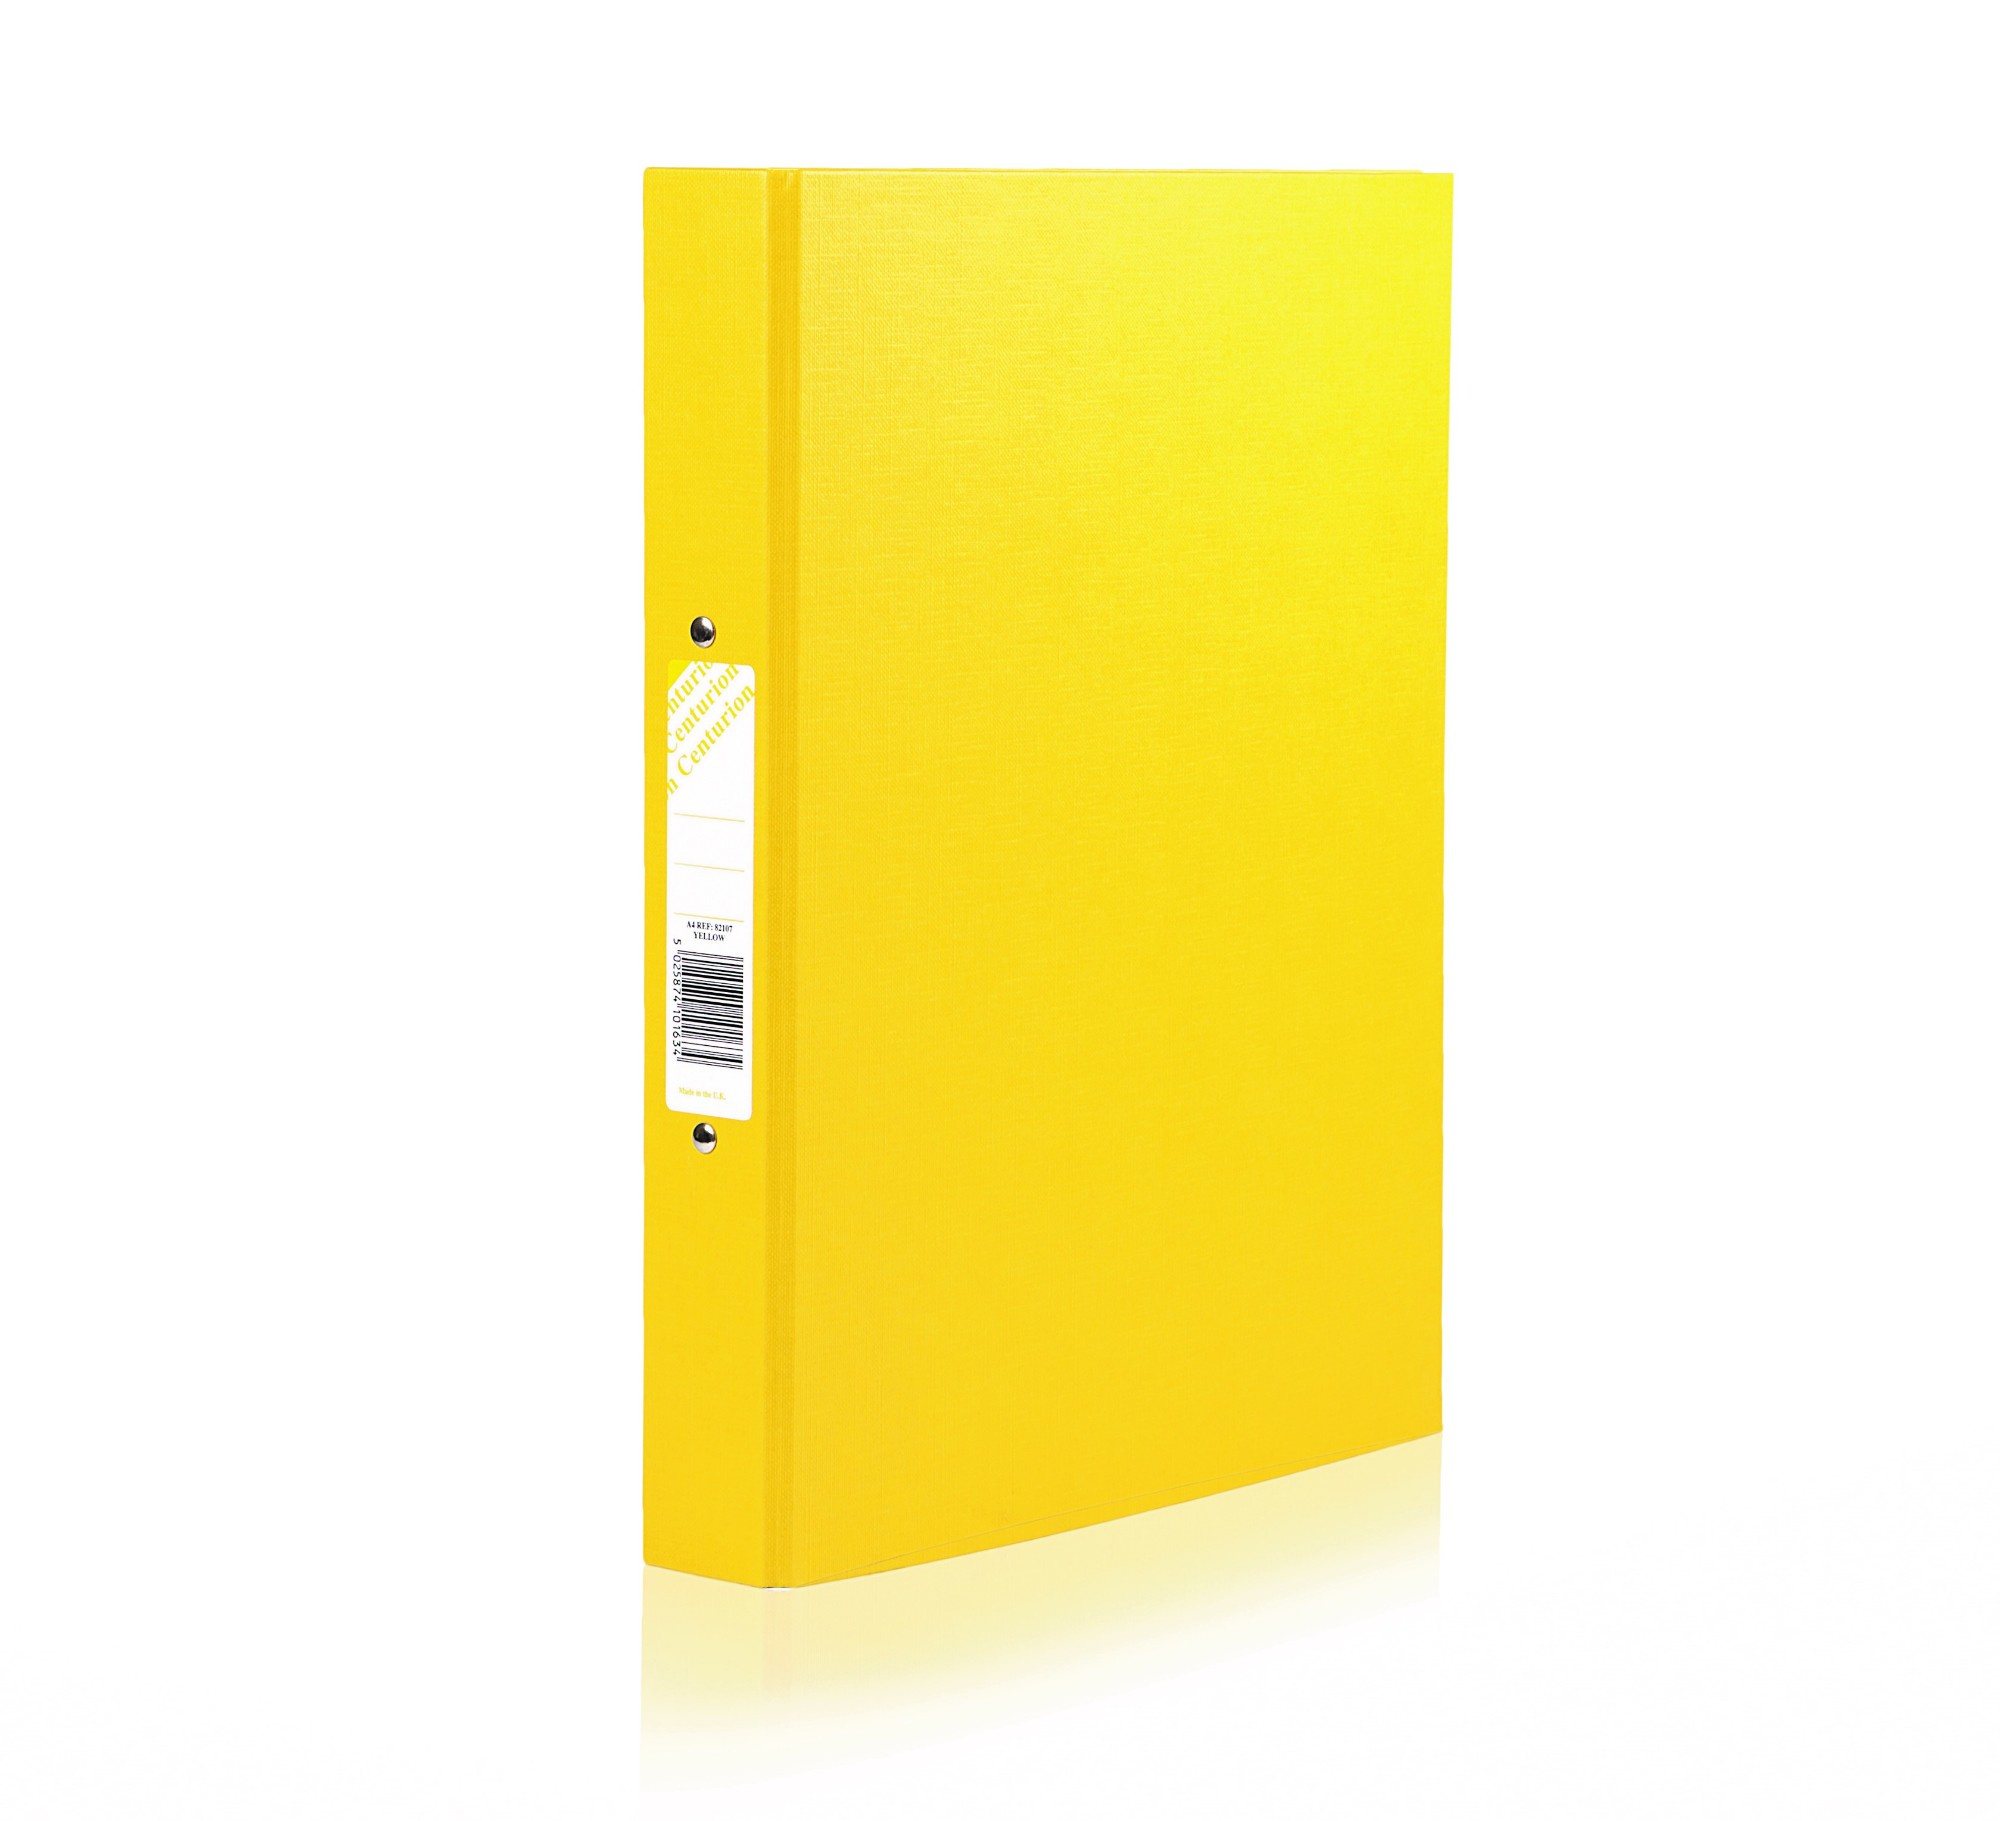 Concord Centurion Classic Ring Binder 2-OR 25mm A4 Yellow PK10